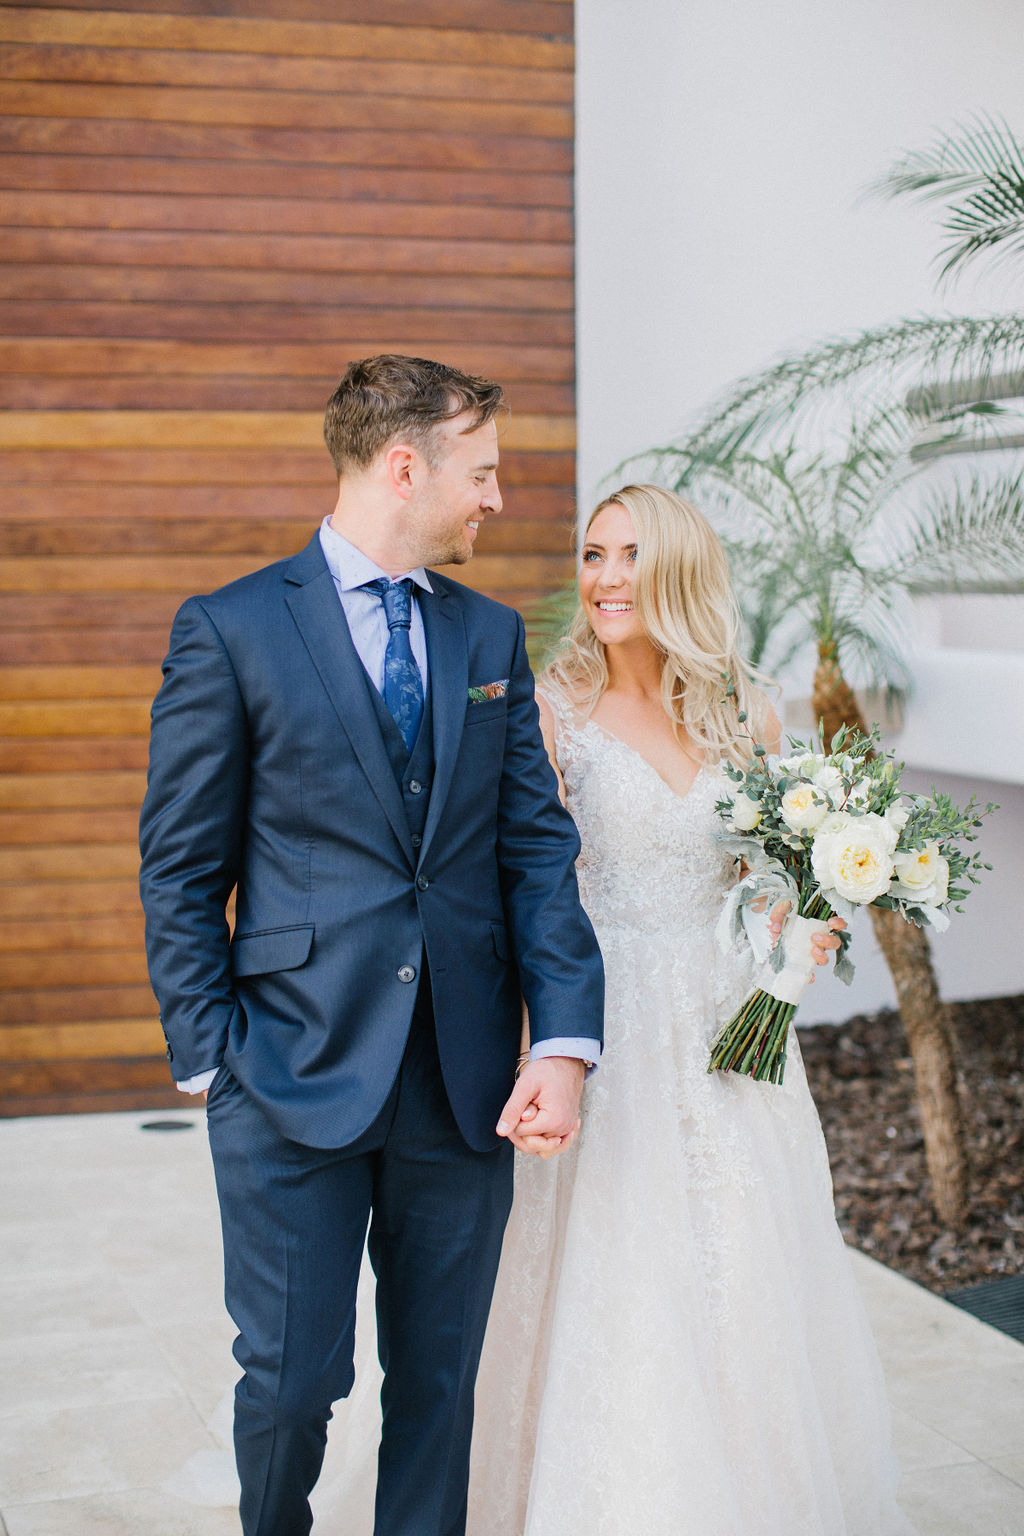 Chic Wedding in Mexico